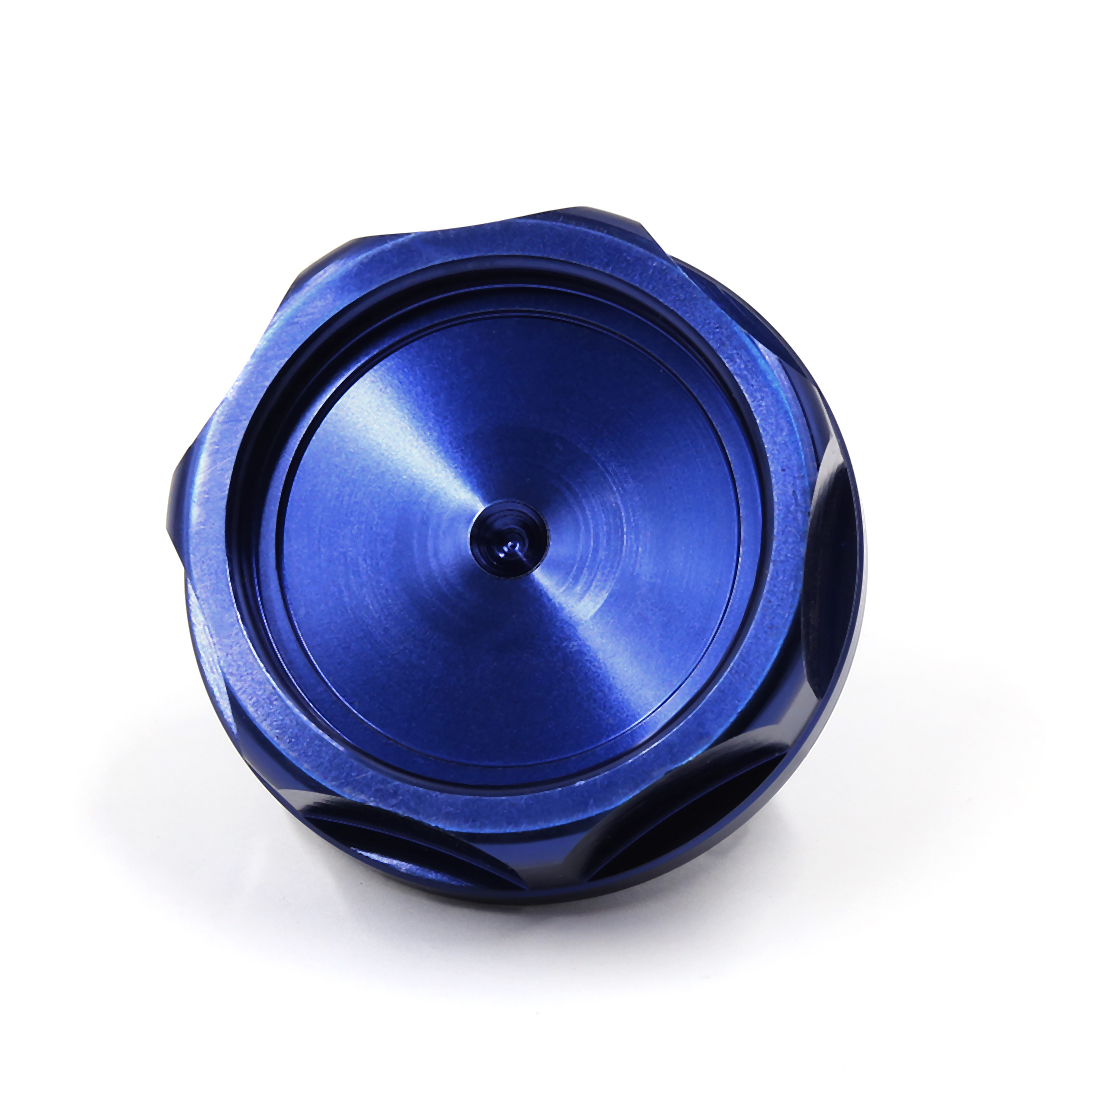 Motorcycle 31mm Thread Dia Aluminum Alloy Engine Oil Filler Fuel Cap Cover Blue for Toyota